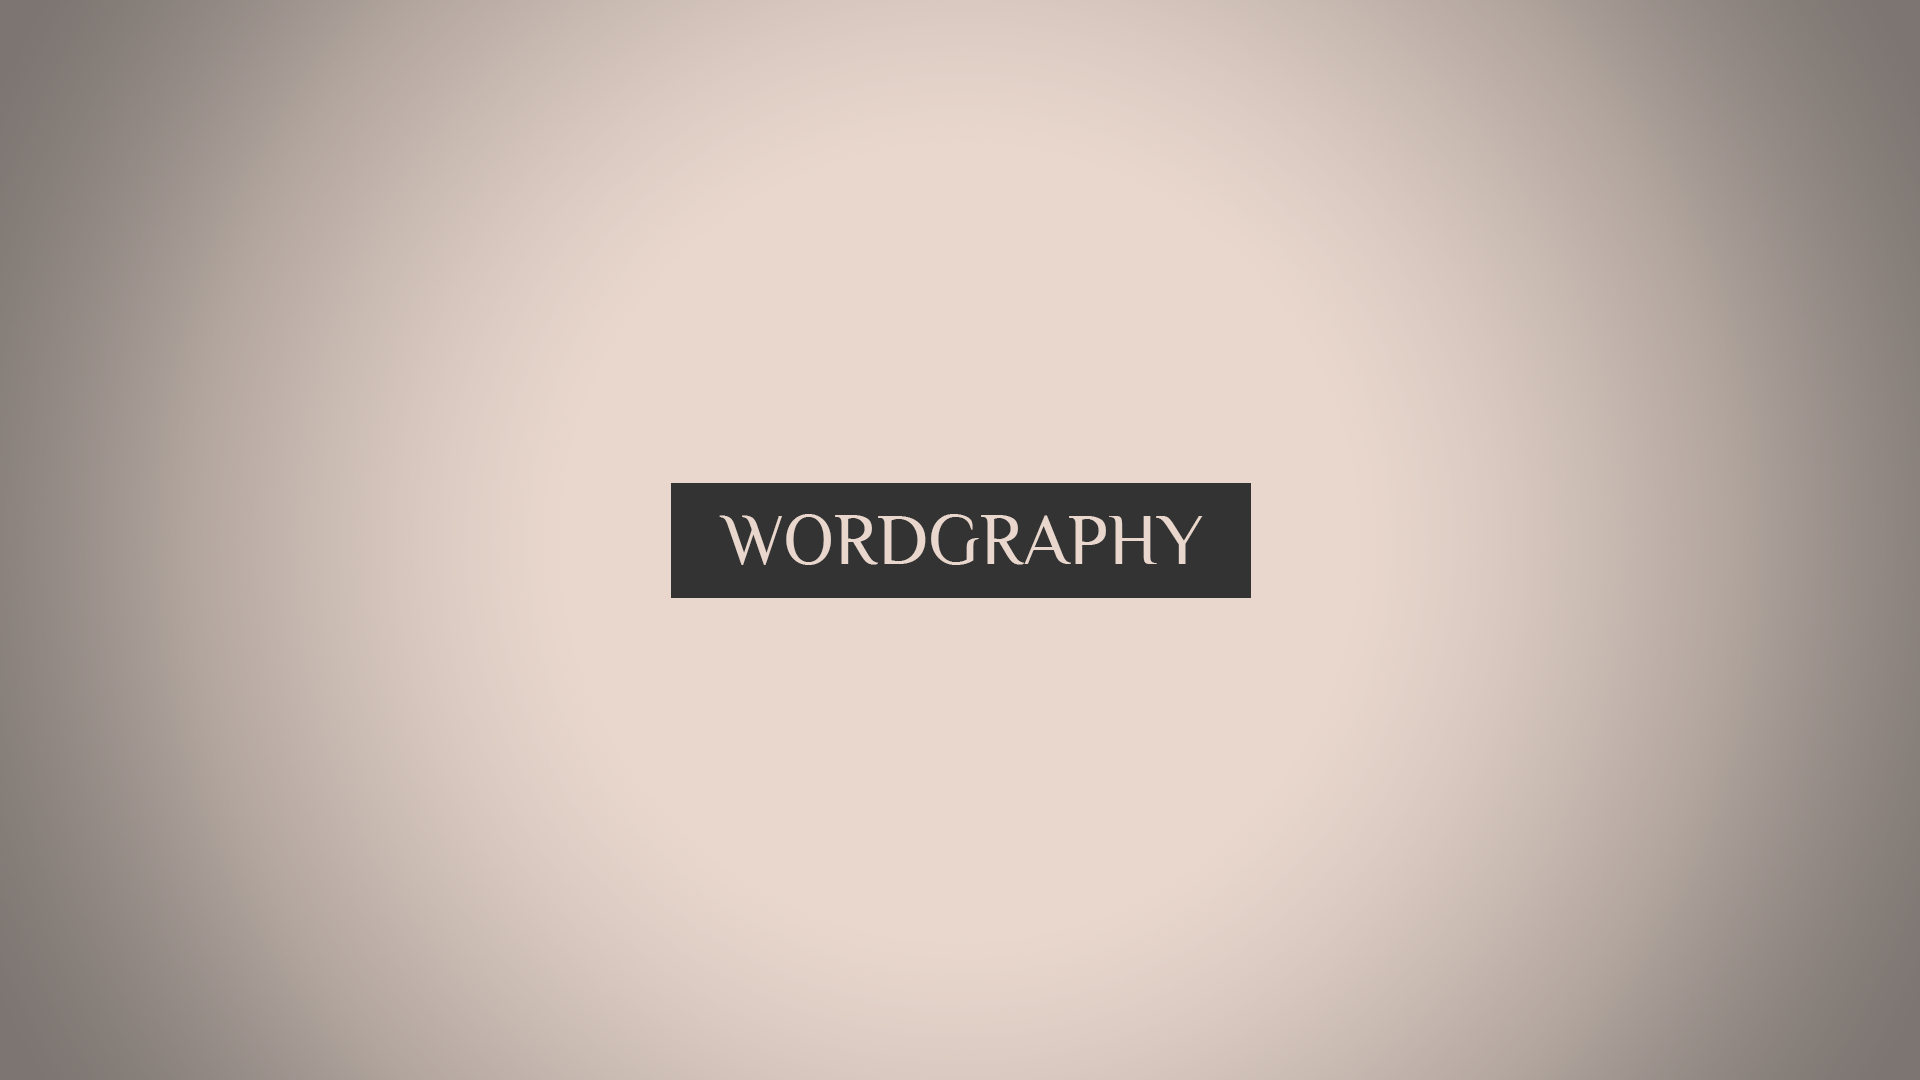 Wordgraphy